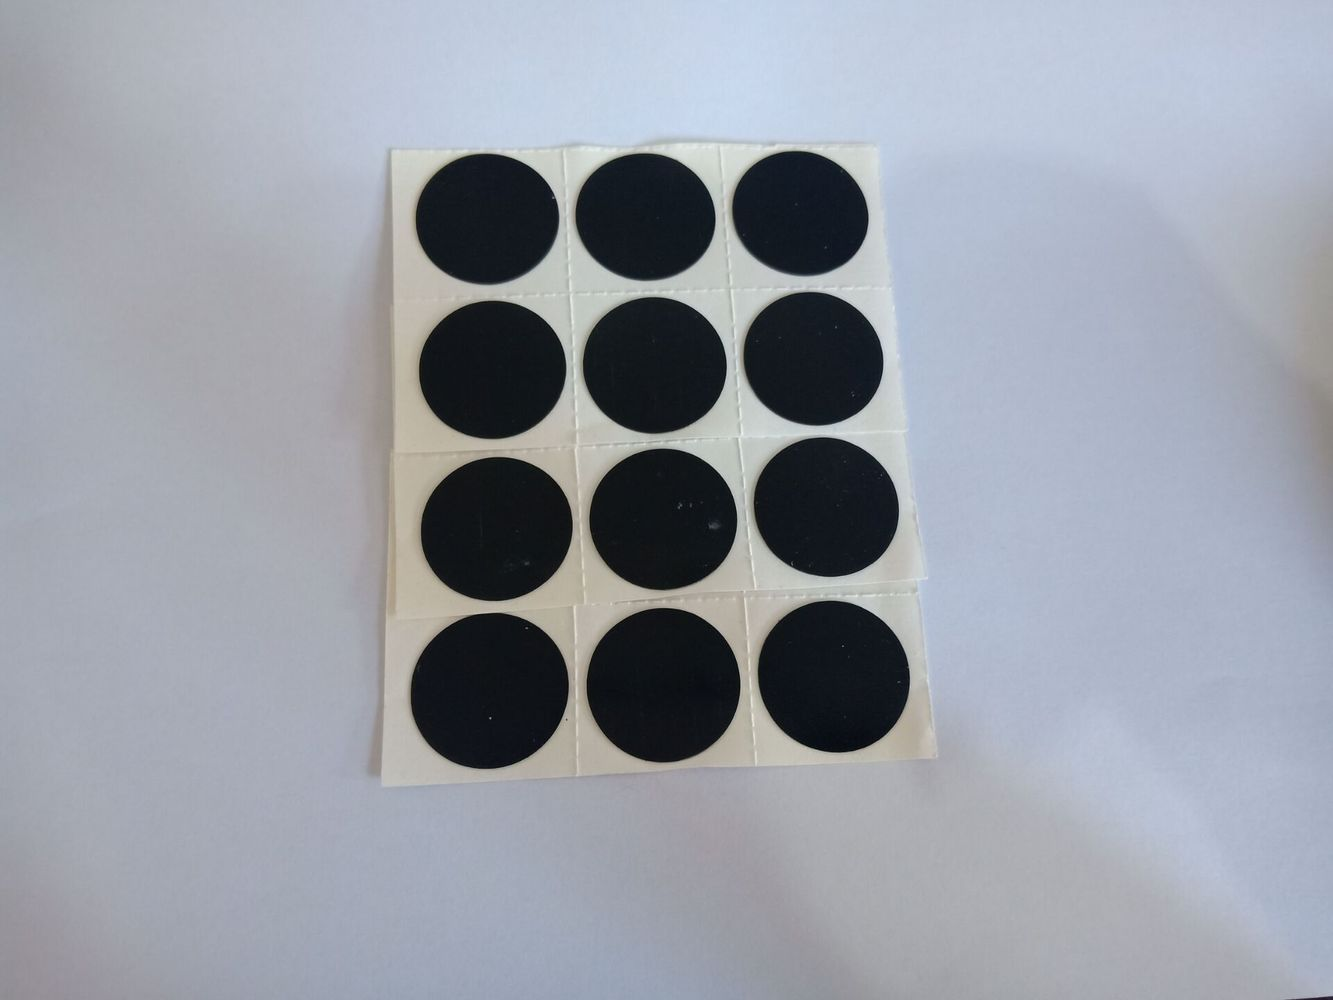 6 Pcs Bicycle Tire Repair Patch 25mm Round Glue-free Tire Repair Bike Tool Fast And Portable For Cycling MTB Moto Road Mountain